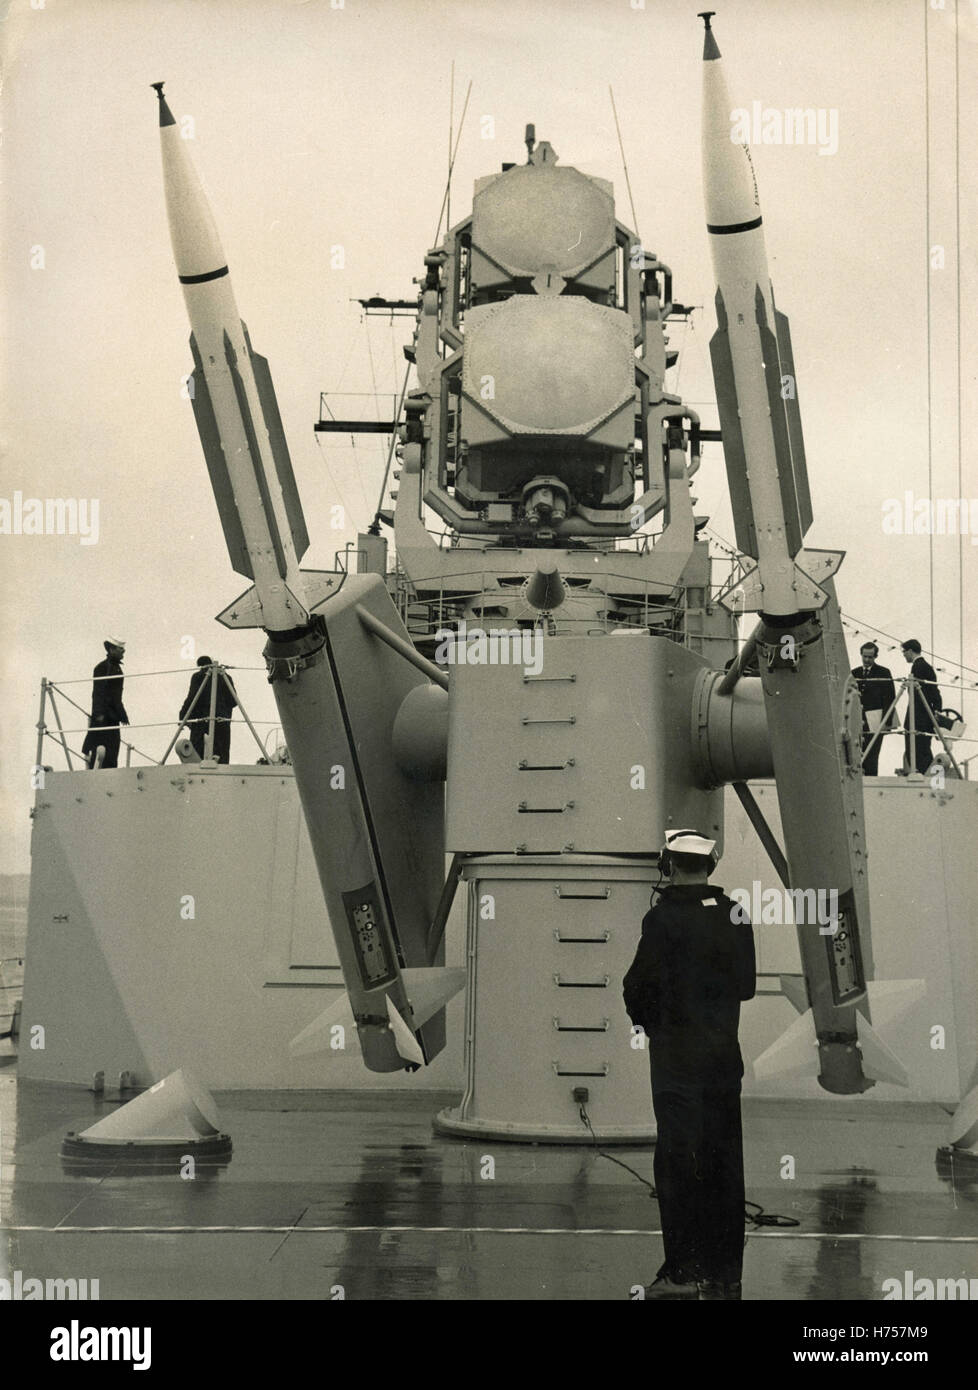 Supersonic anti-aircraft missiles Terrier class aboard the ship Dewey, USA - Stock Image